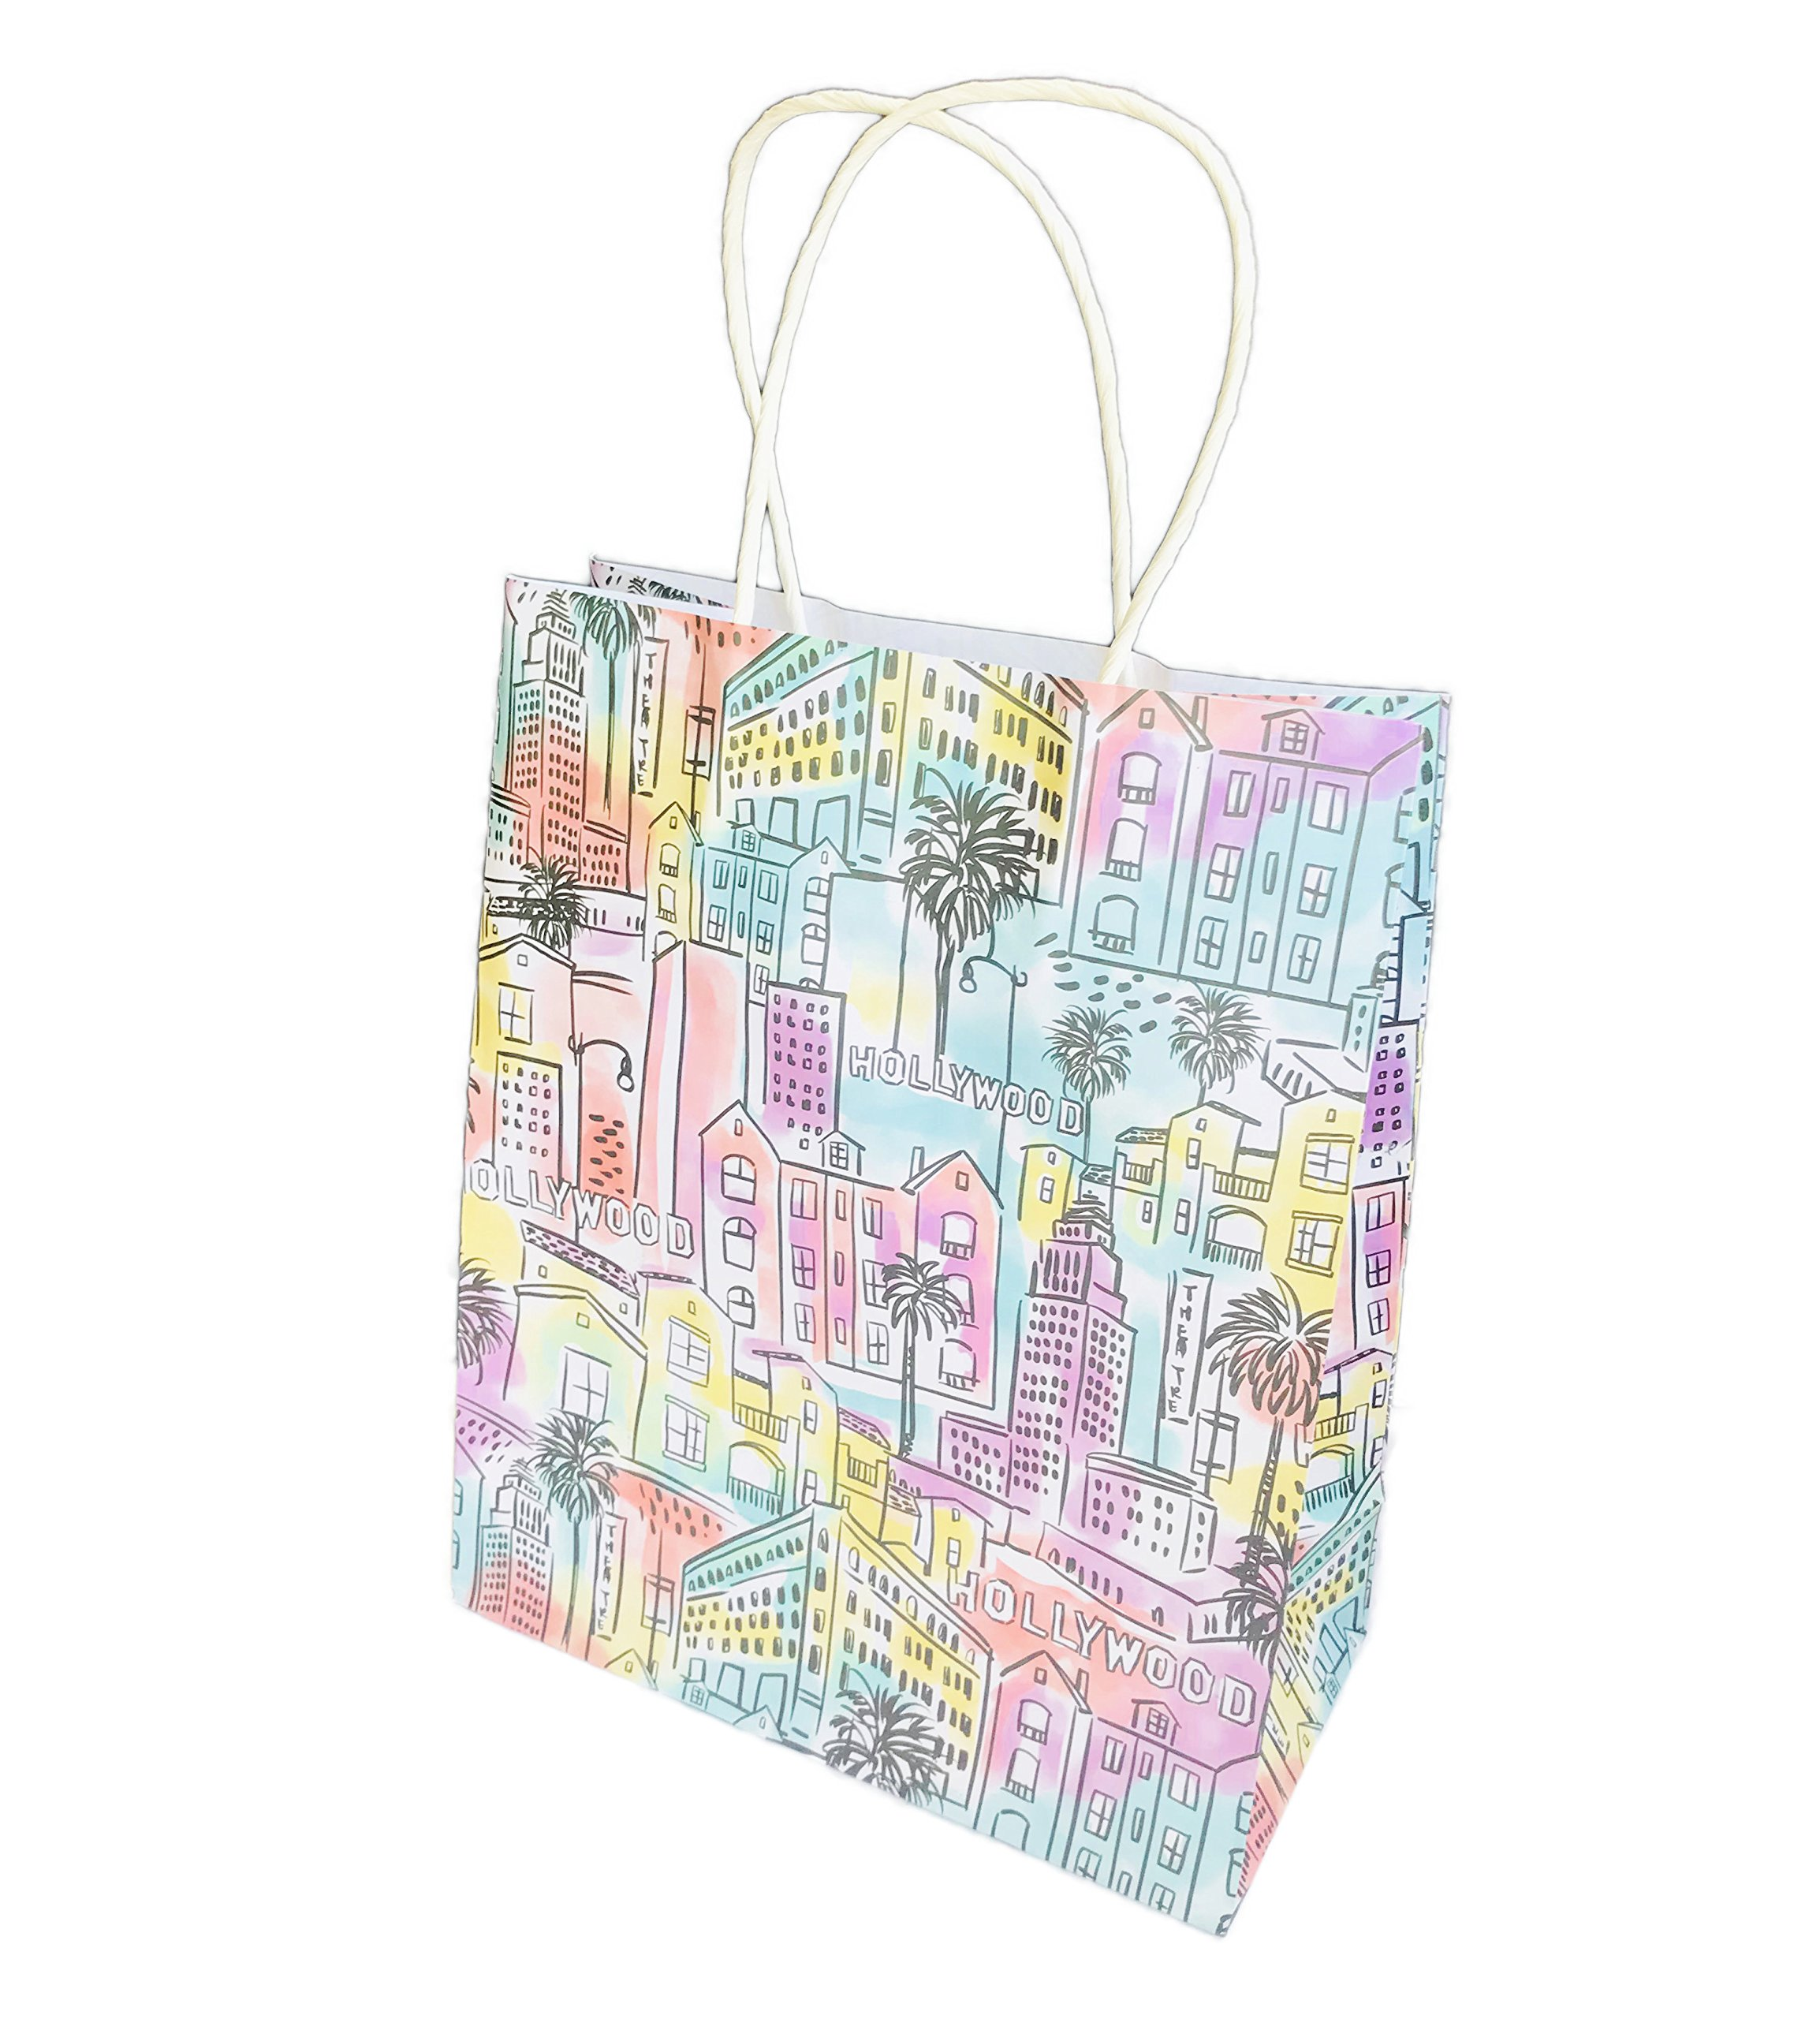 Destination City Themed Novelty Party Gift Bag 12.75 x 10.5 x 5 (Los Angeles)